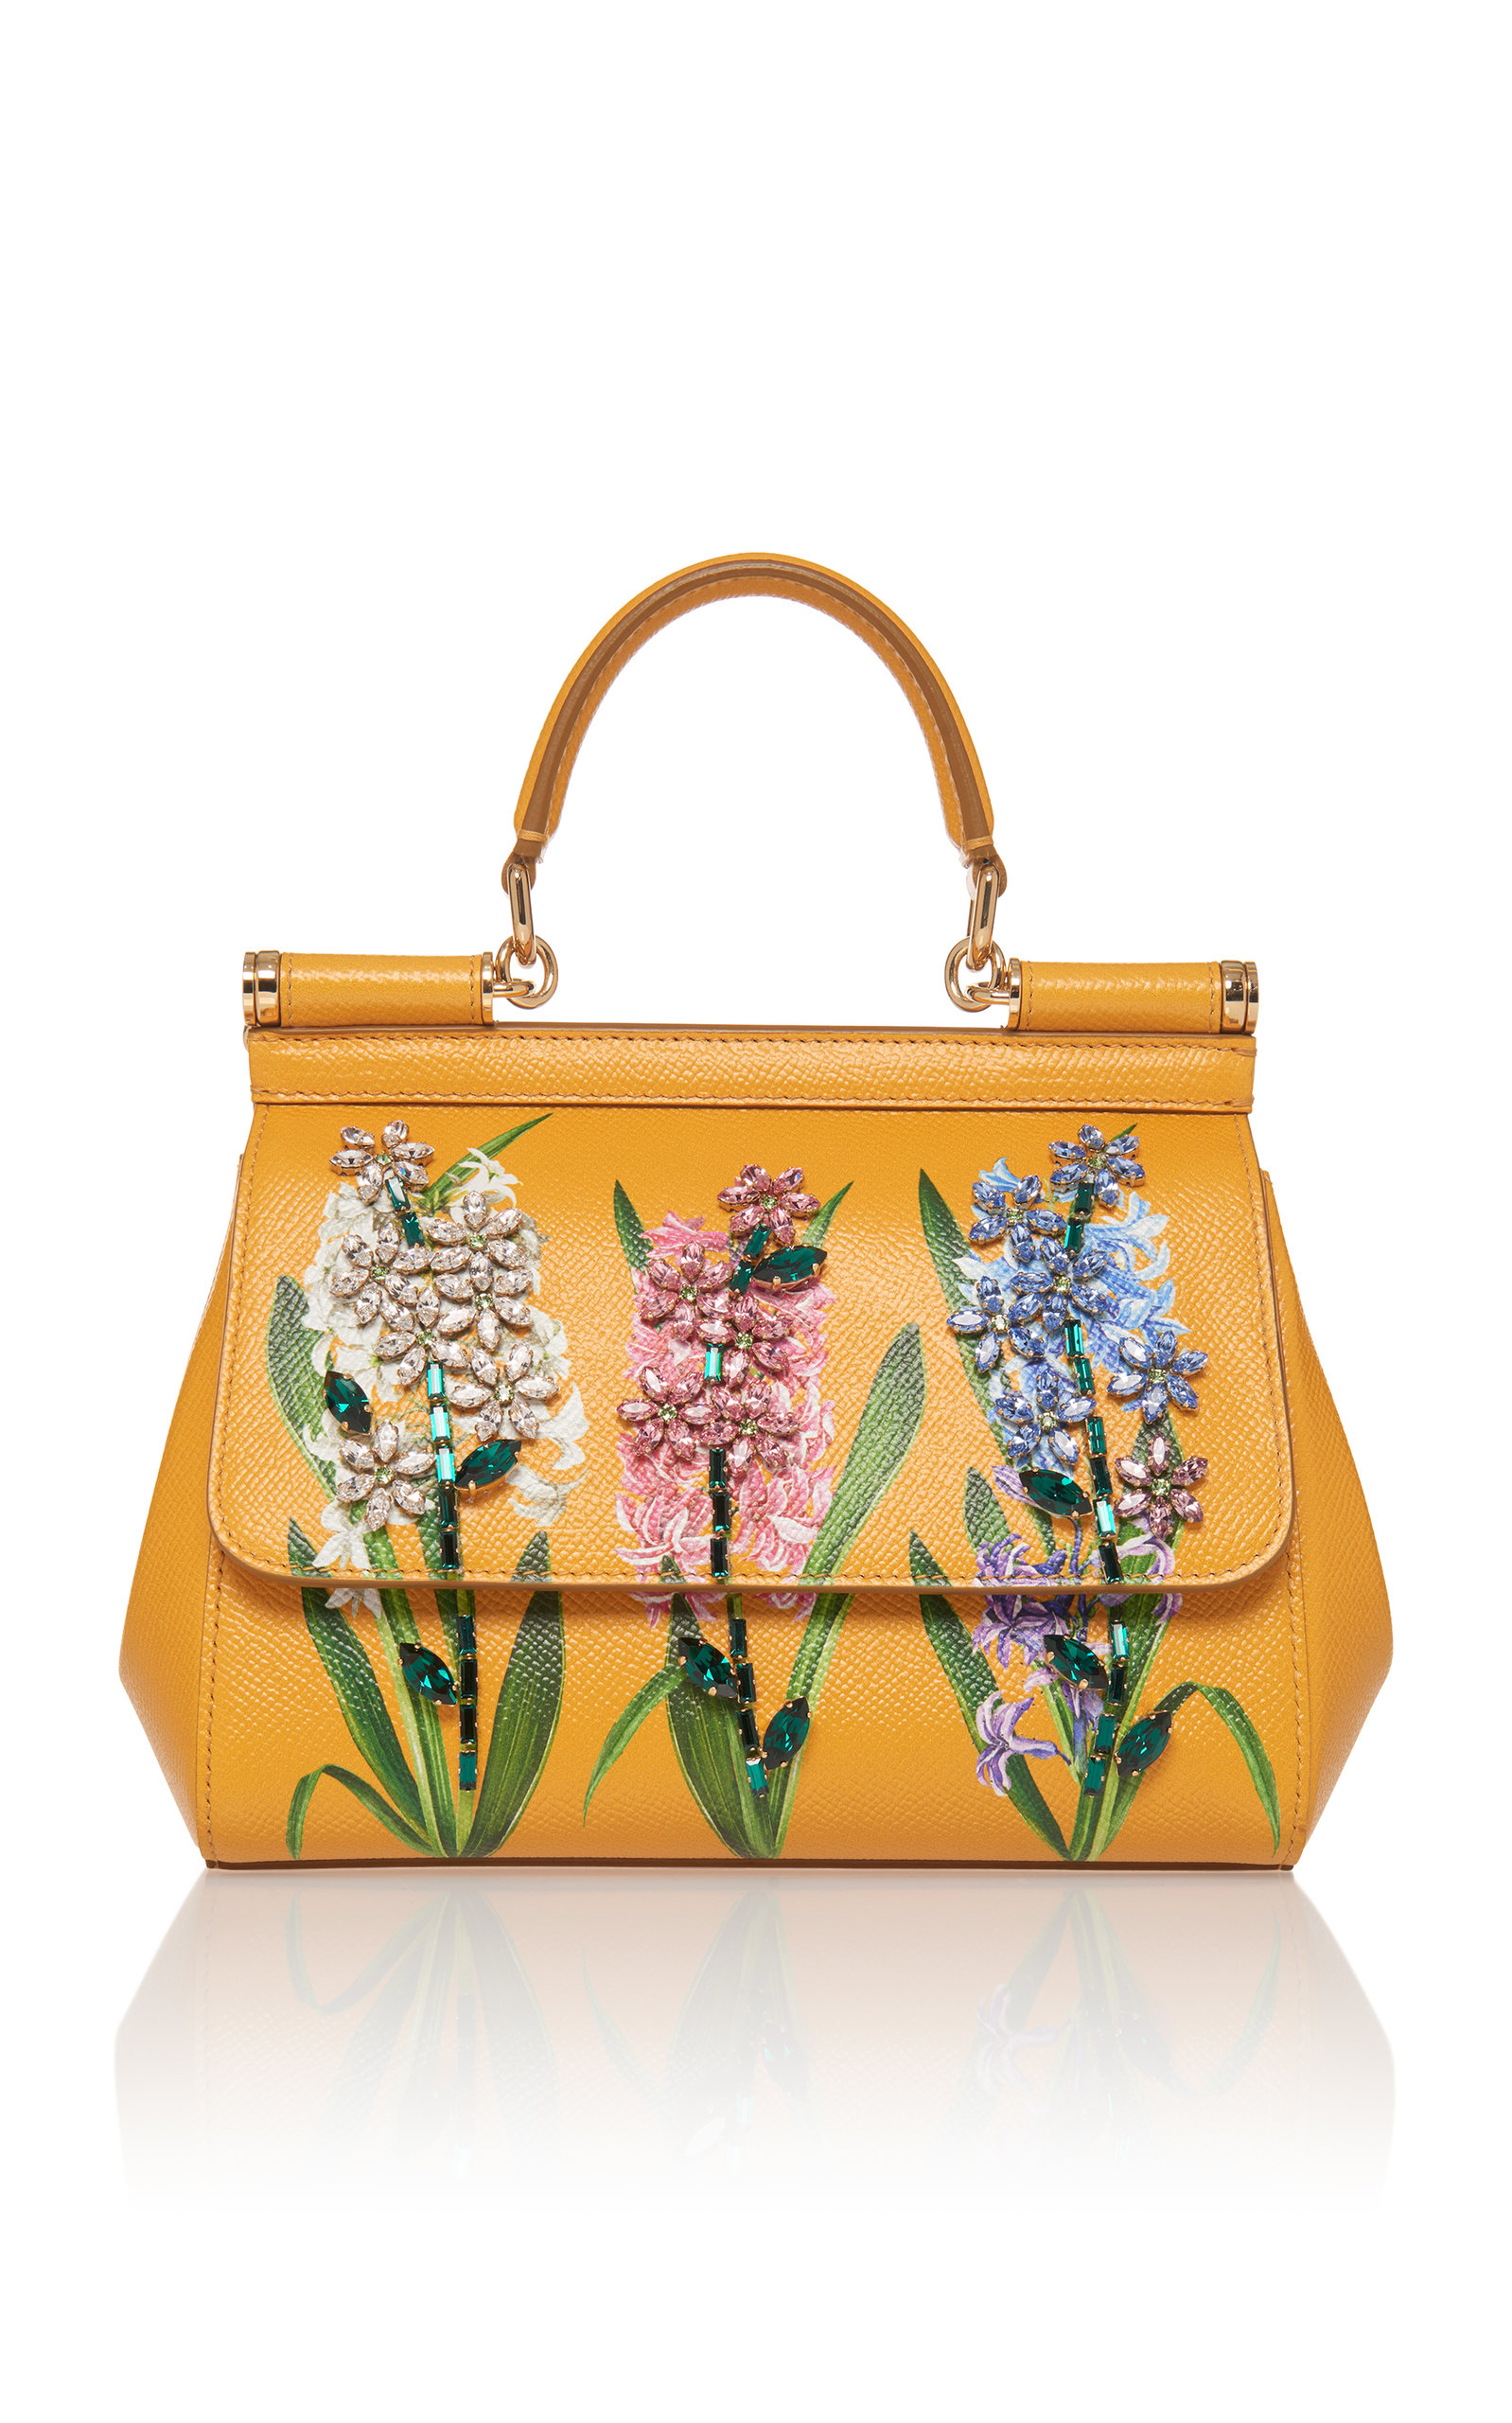 Sicily Handbag In Printed Dauphine Calfskin With Embroideries, Yellow